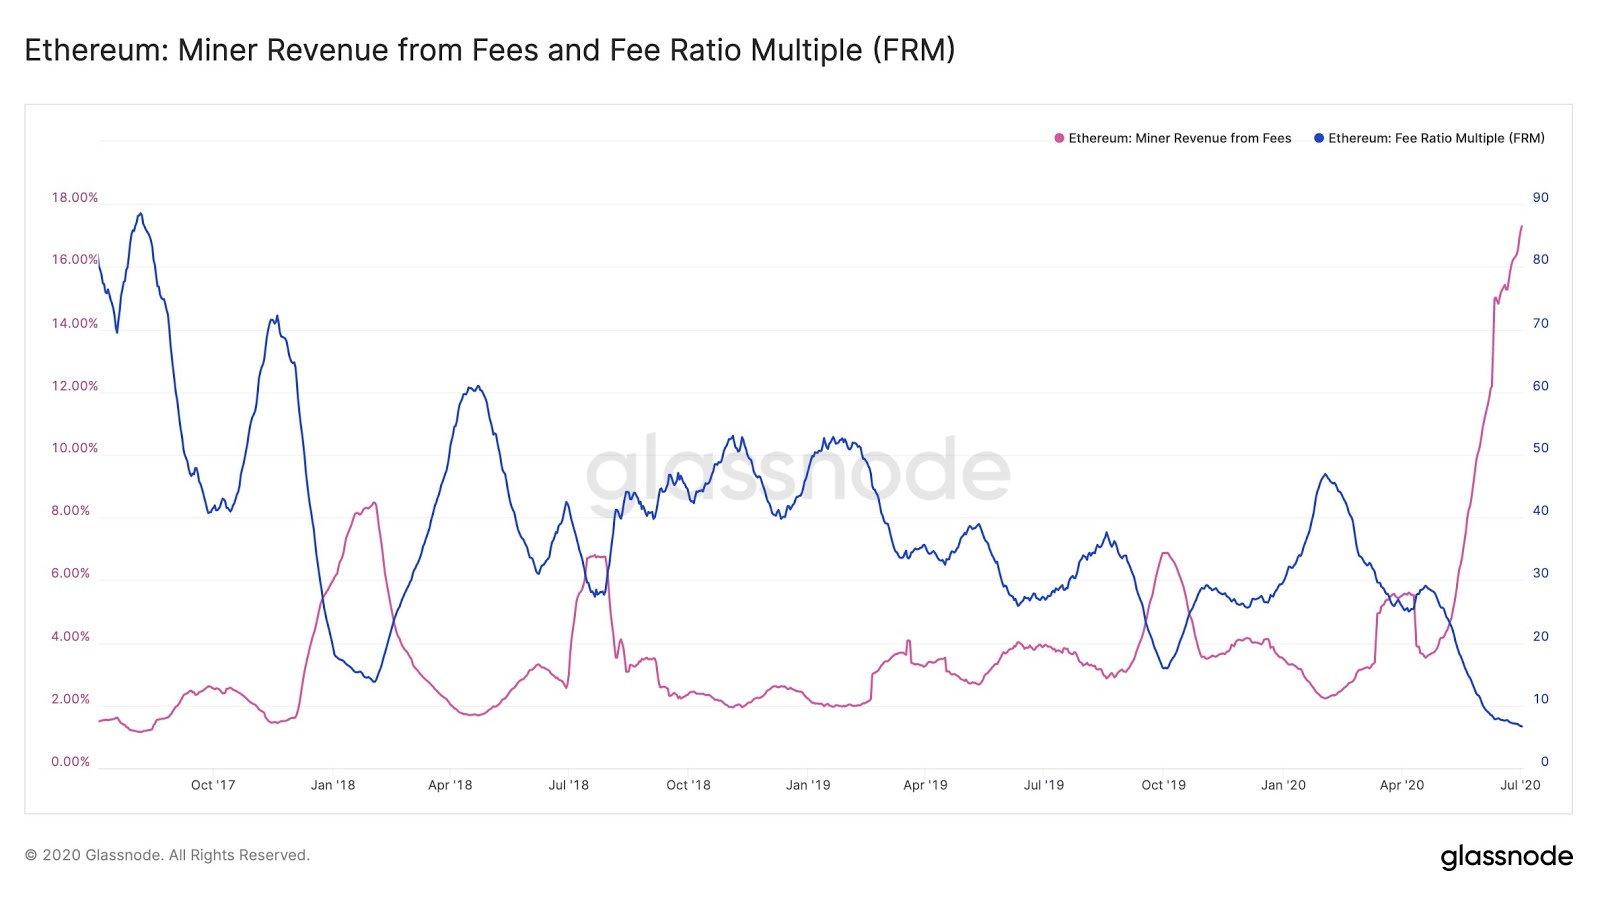 Miner revenue from fees and fee ratio multiple